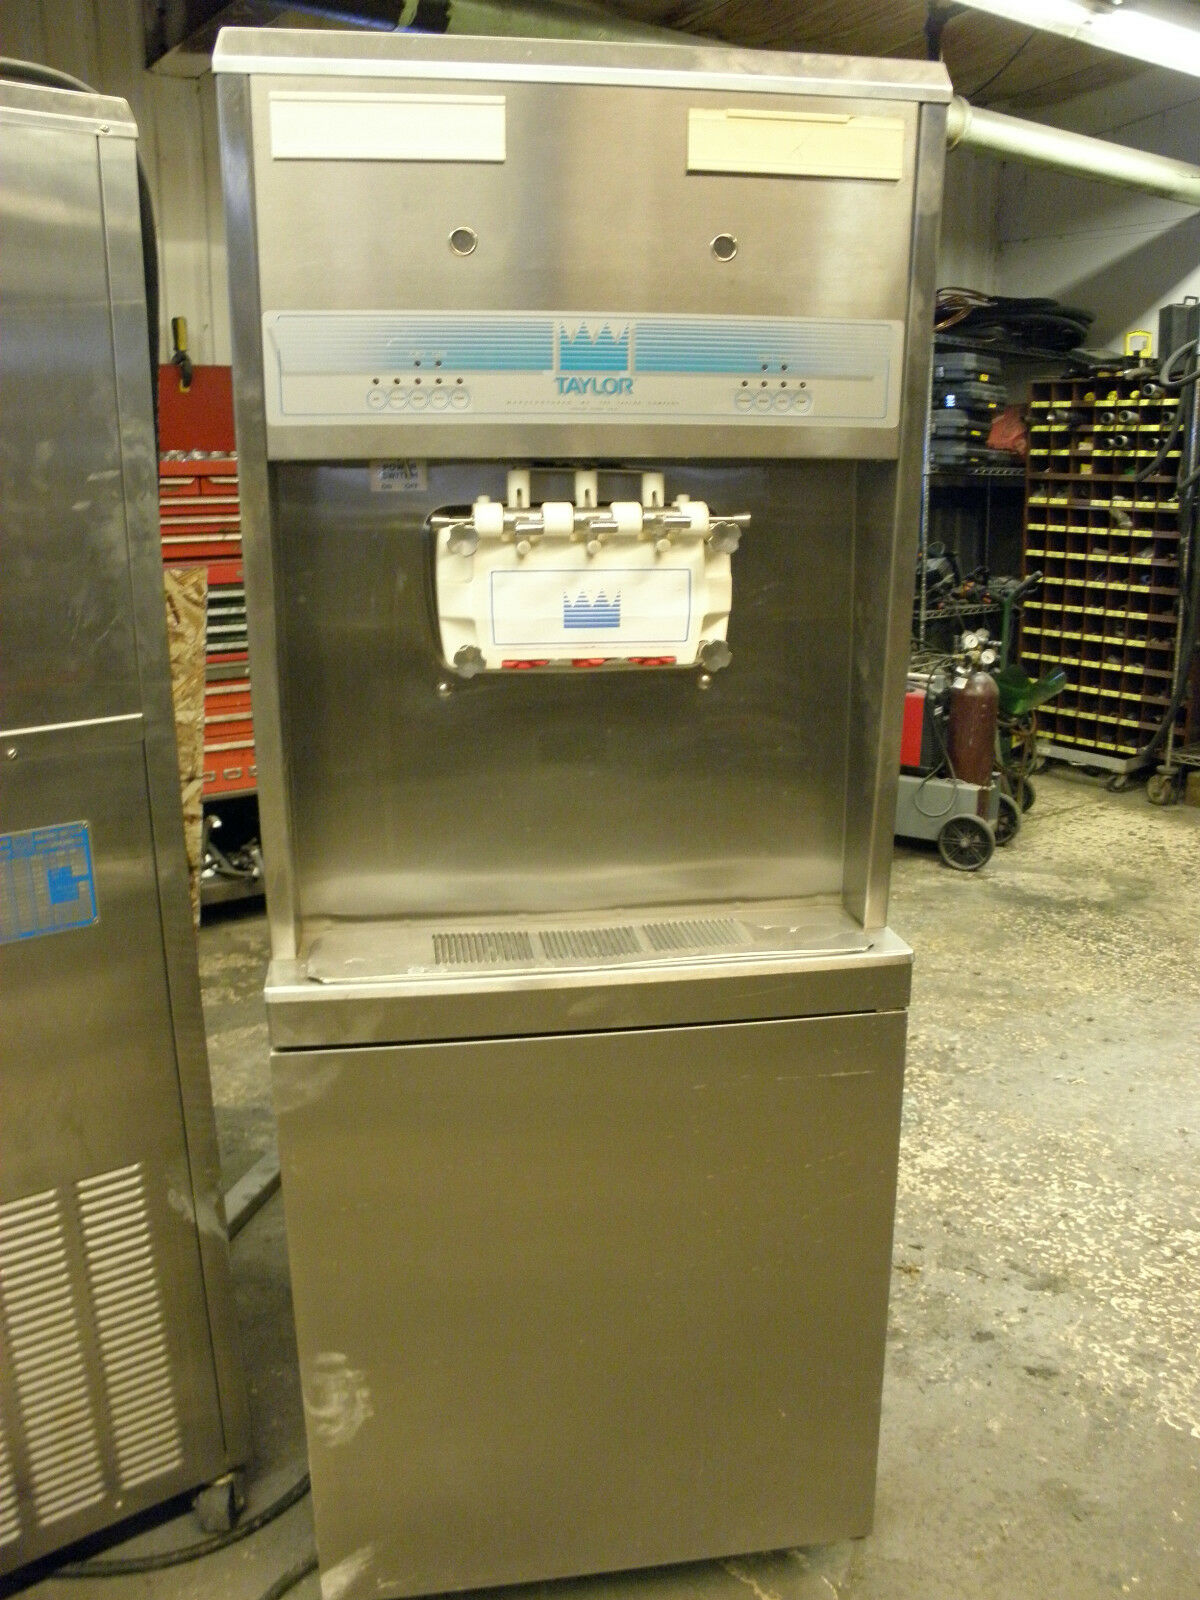 TAYLOR 8756-27 SINGLE PHASE WATER COOLED SOFT SERVE ICE CREAM CUSTARD MACHINE